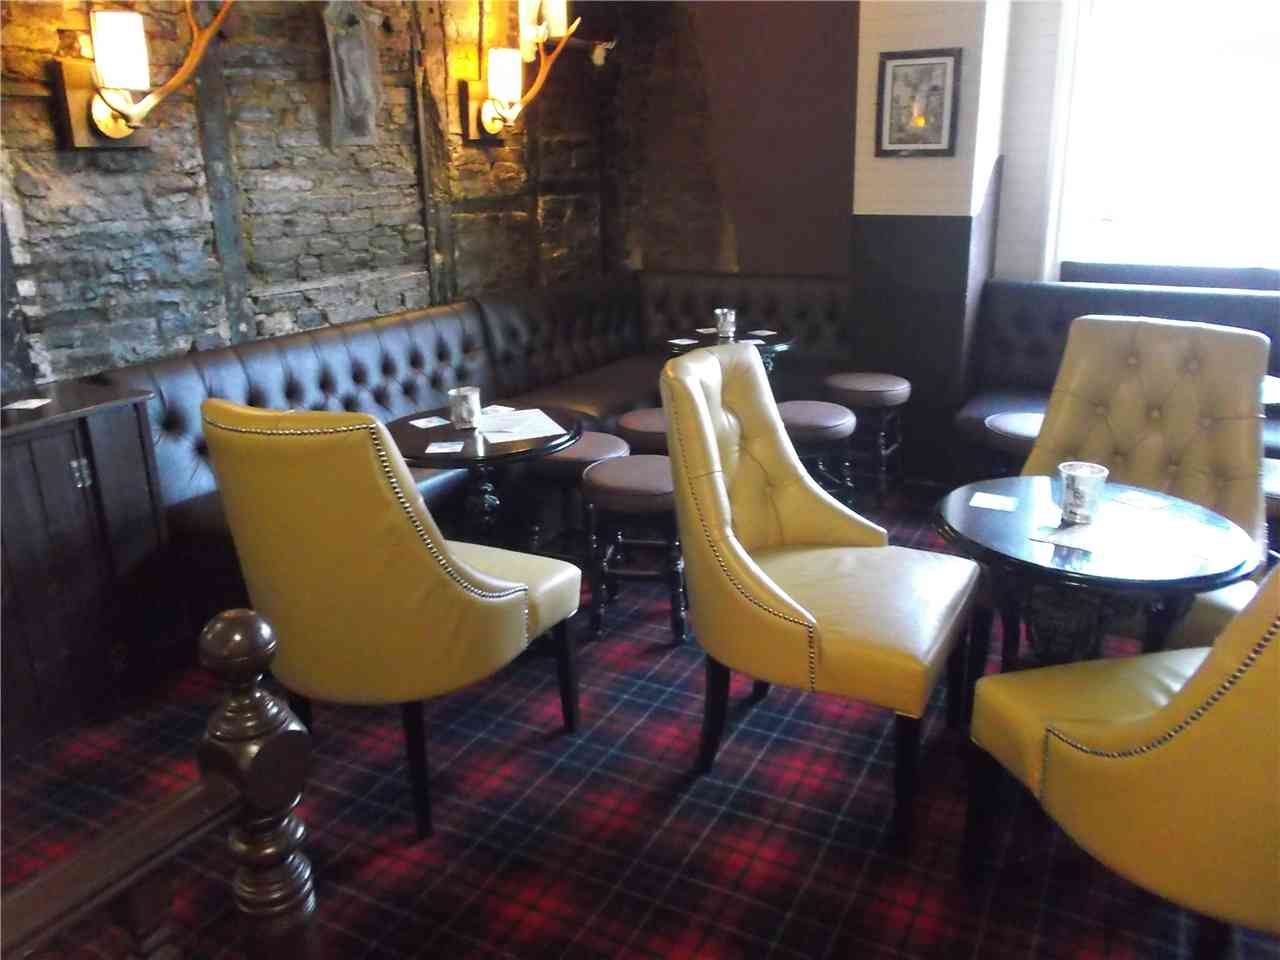 Bespoke lounge chairs in an old pub.